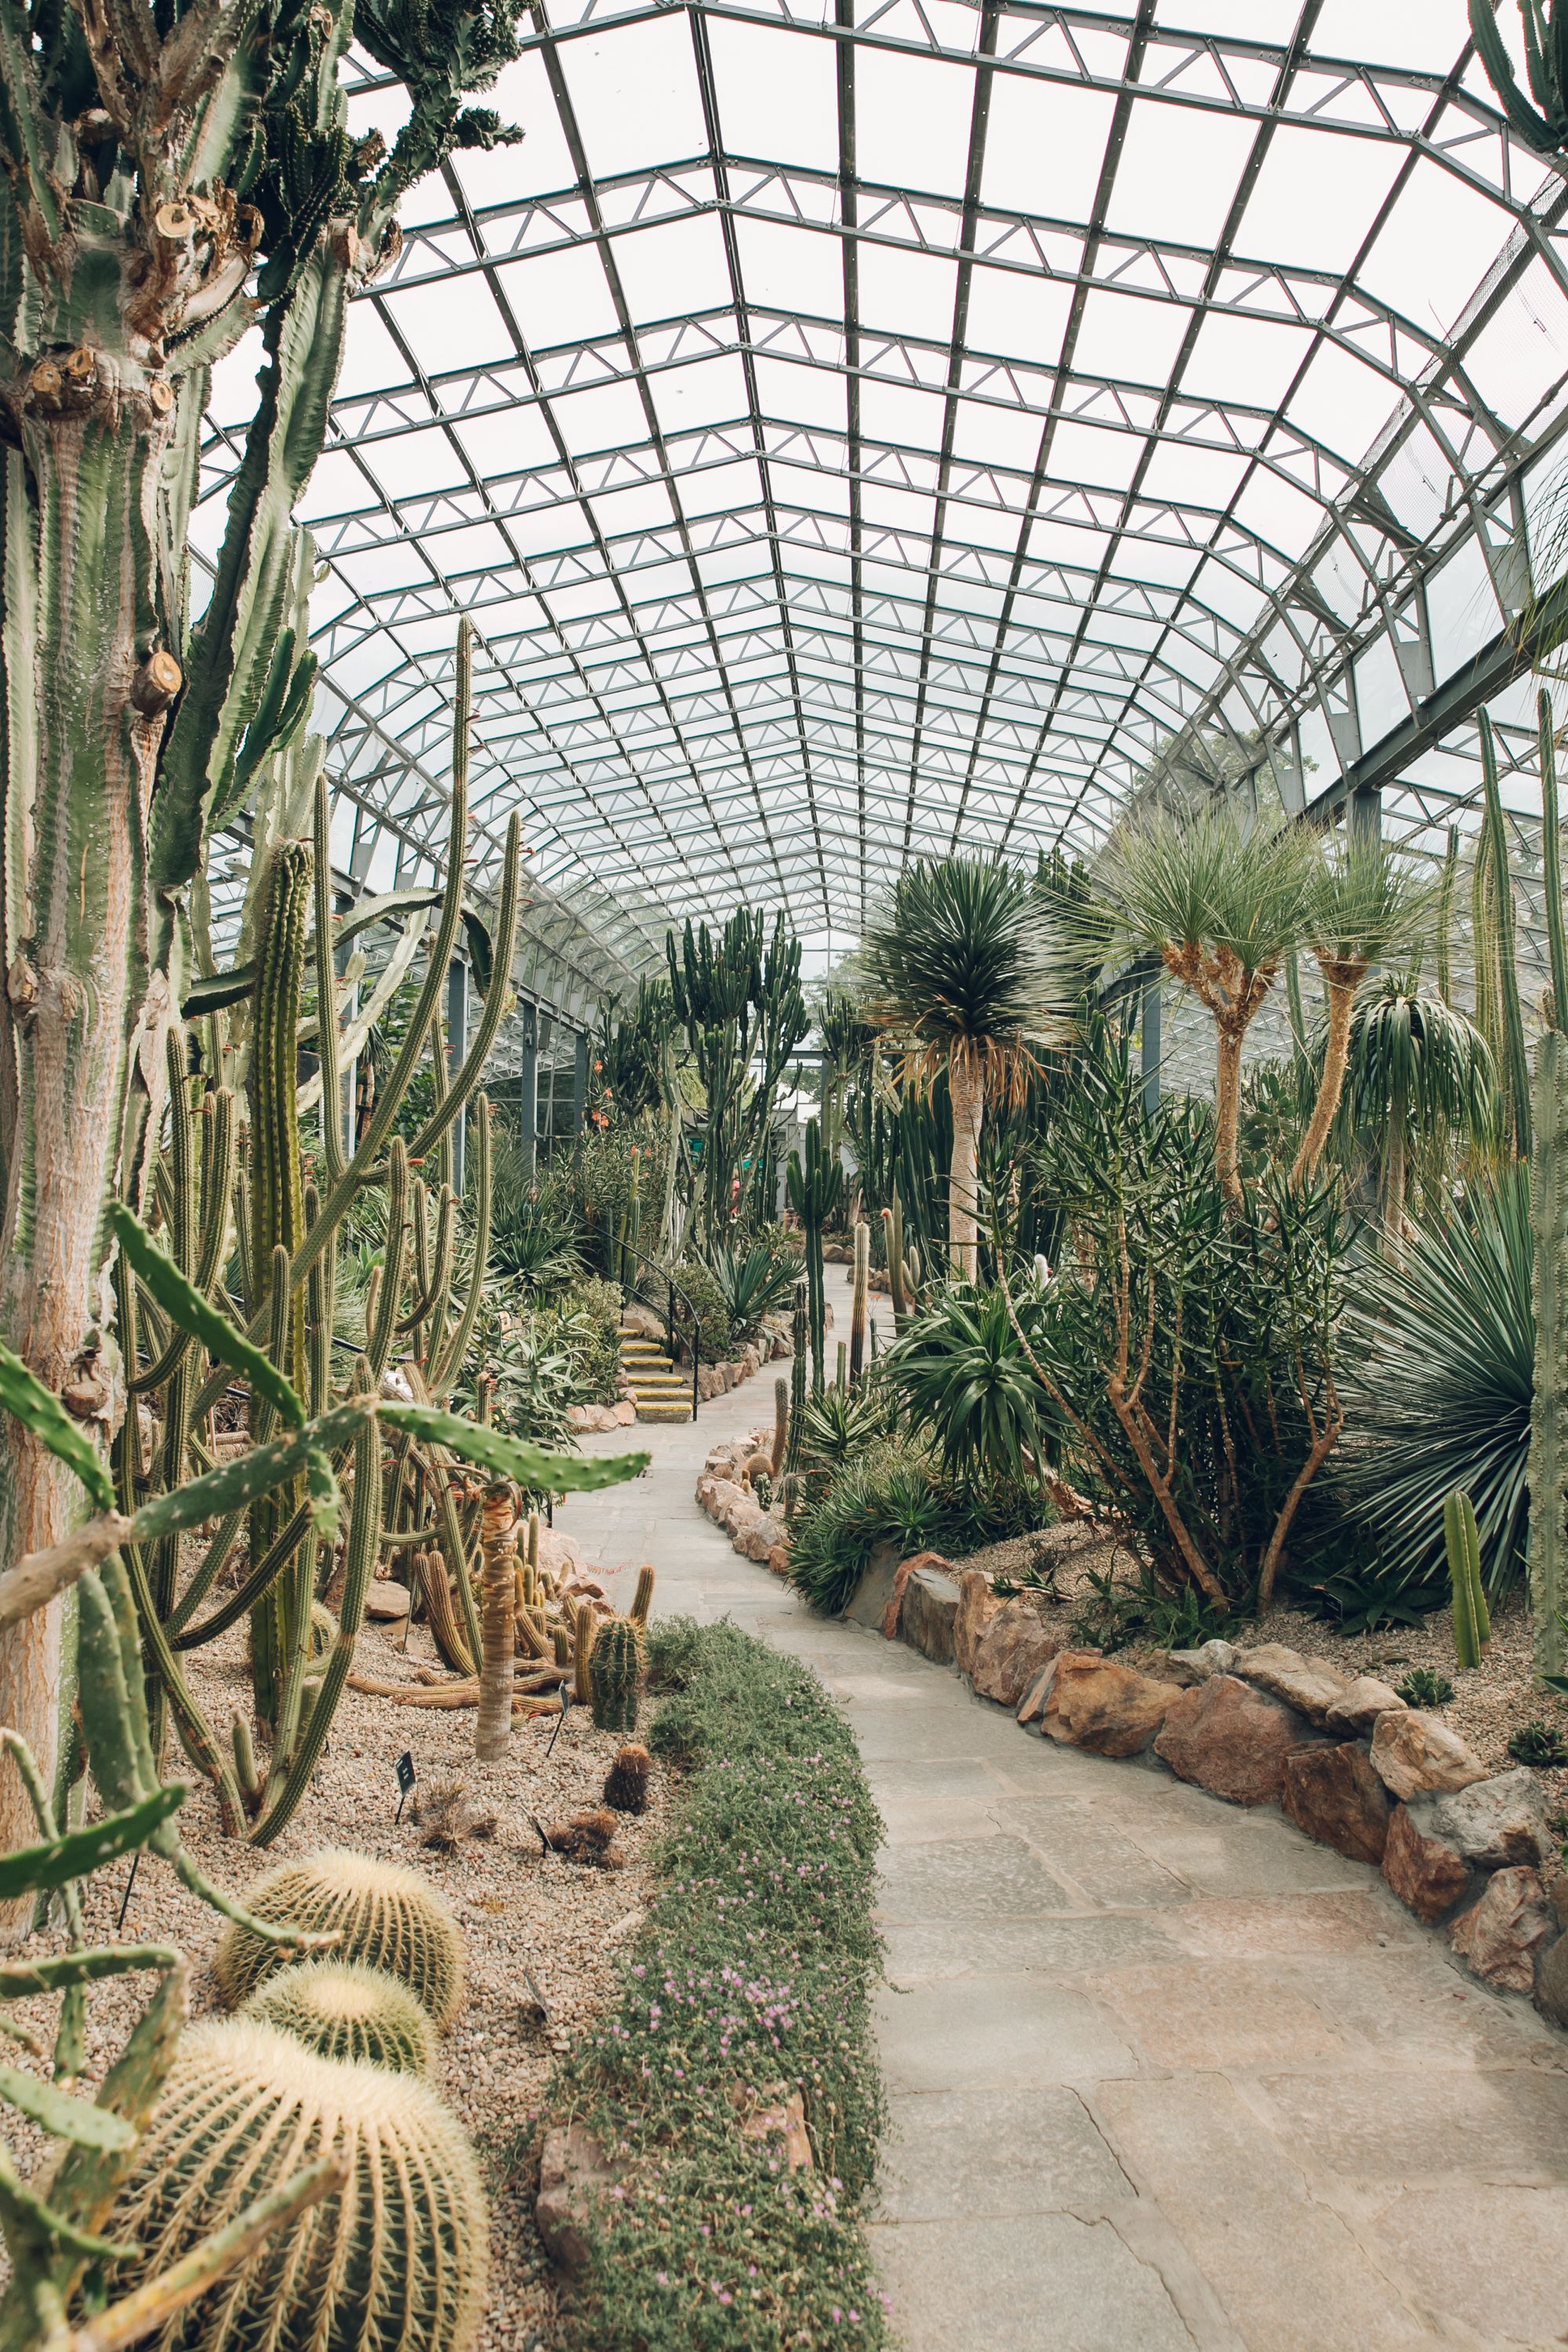 The David Welch Winter Garden, Duthie Park in Aberdeen — Scotland is part of Winter garden Indoor - Continuing our tour of Scottish greenhouses